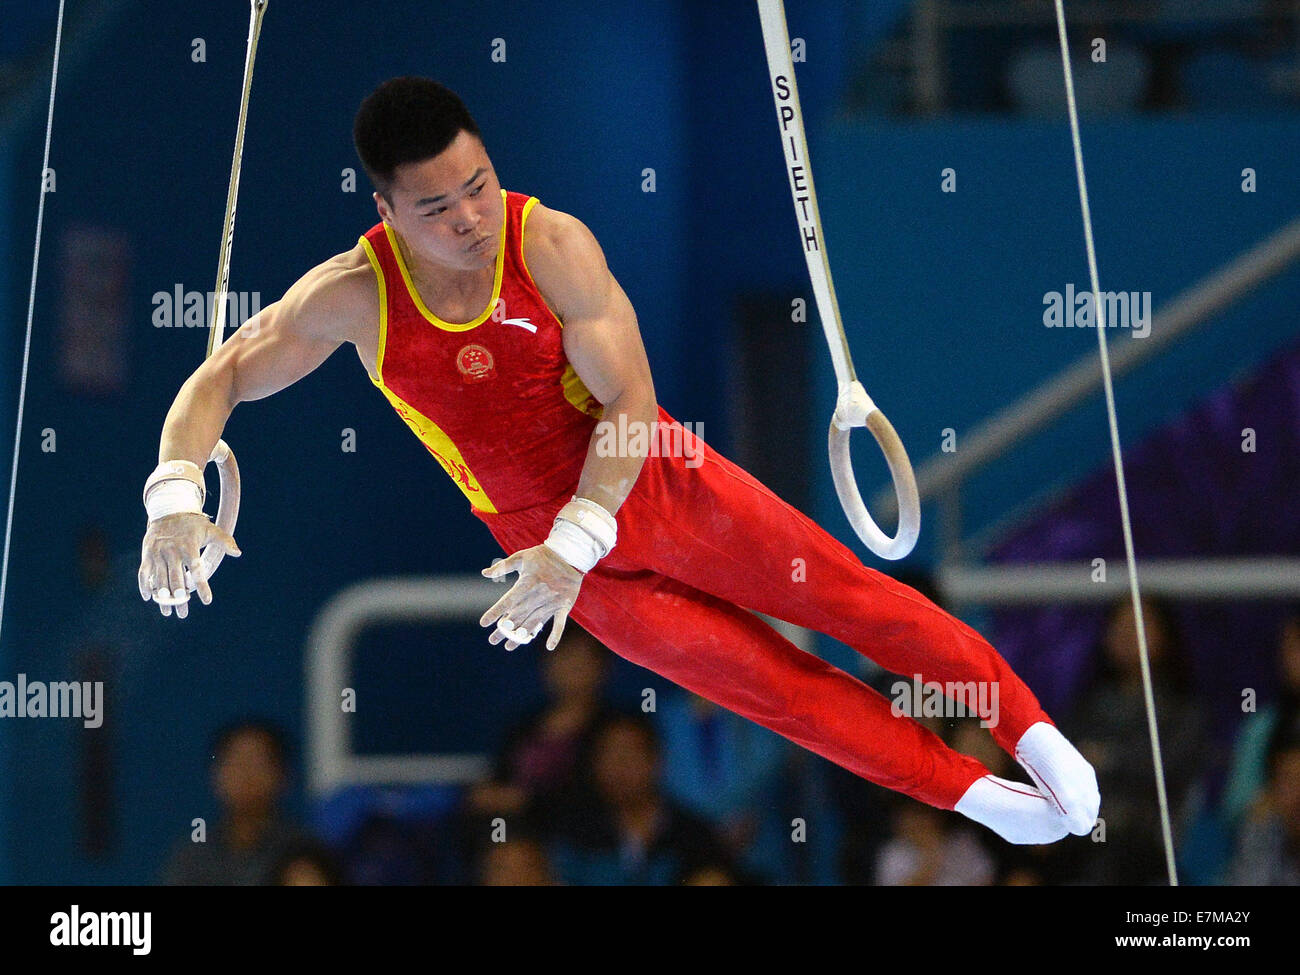 Incheon, South Korea. 21st Sep, 2014. Liao Junlin of China competes during the rings of men's gymnastics artistic Stock Photo